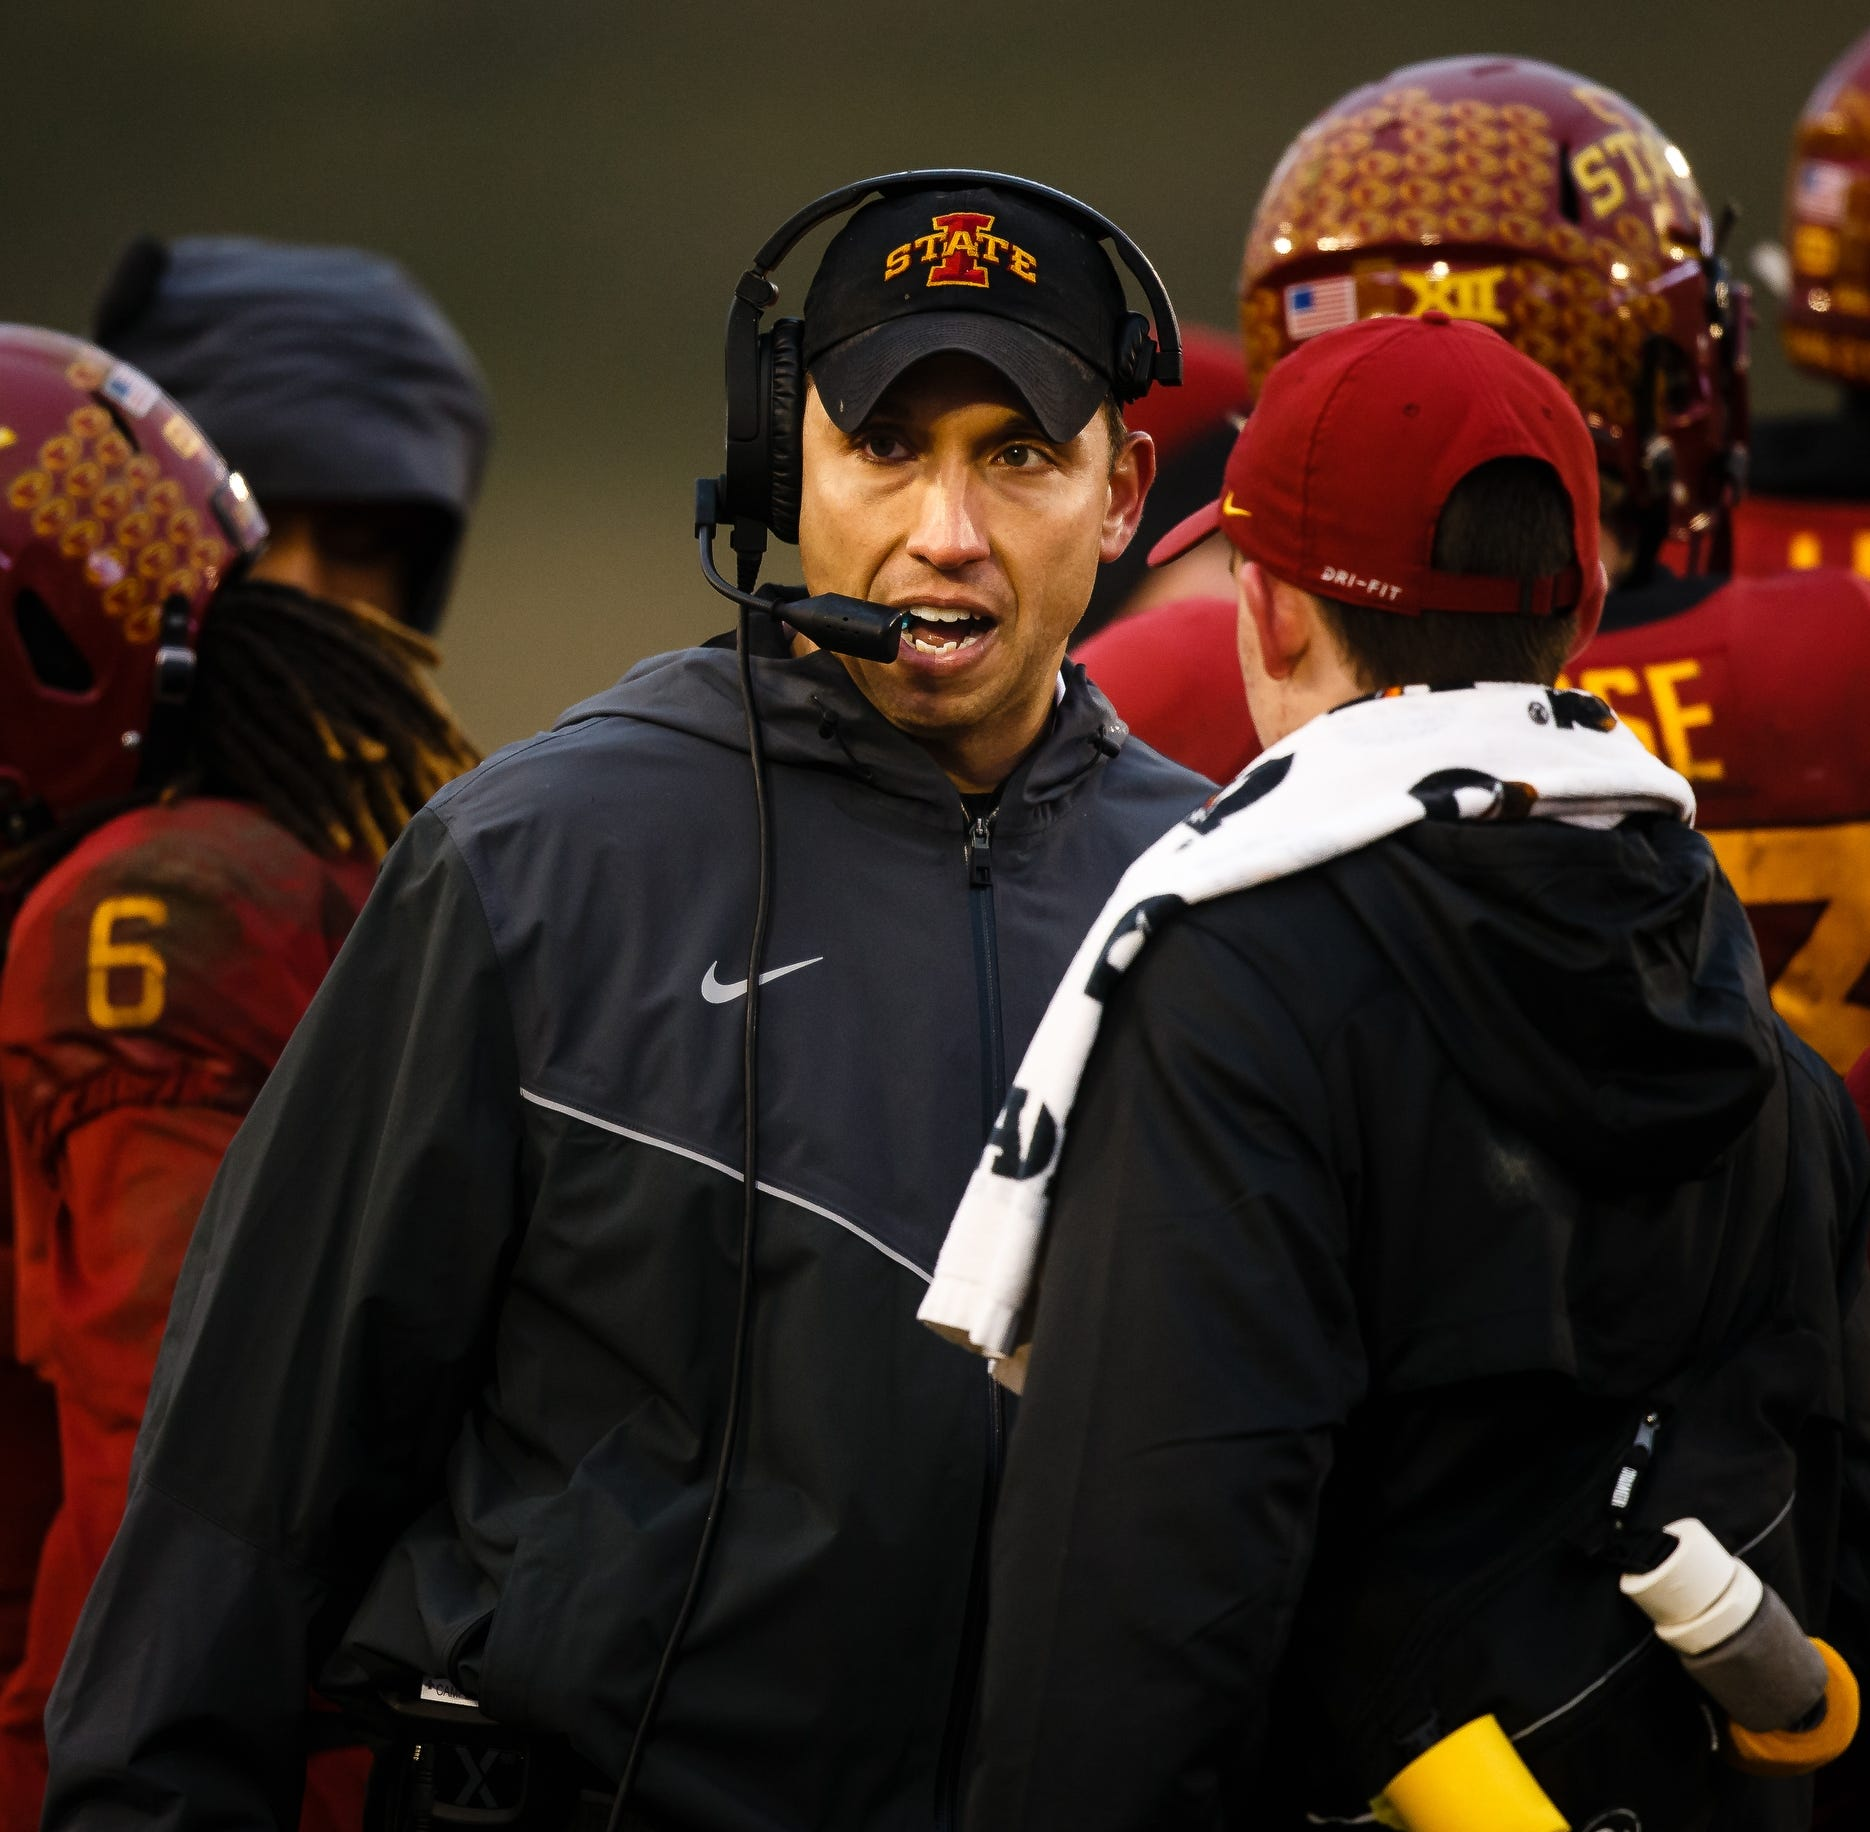 'Matt is committed to doing some historic things': Iowa State, Matt Campbell sign new contract extension